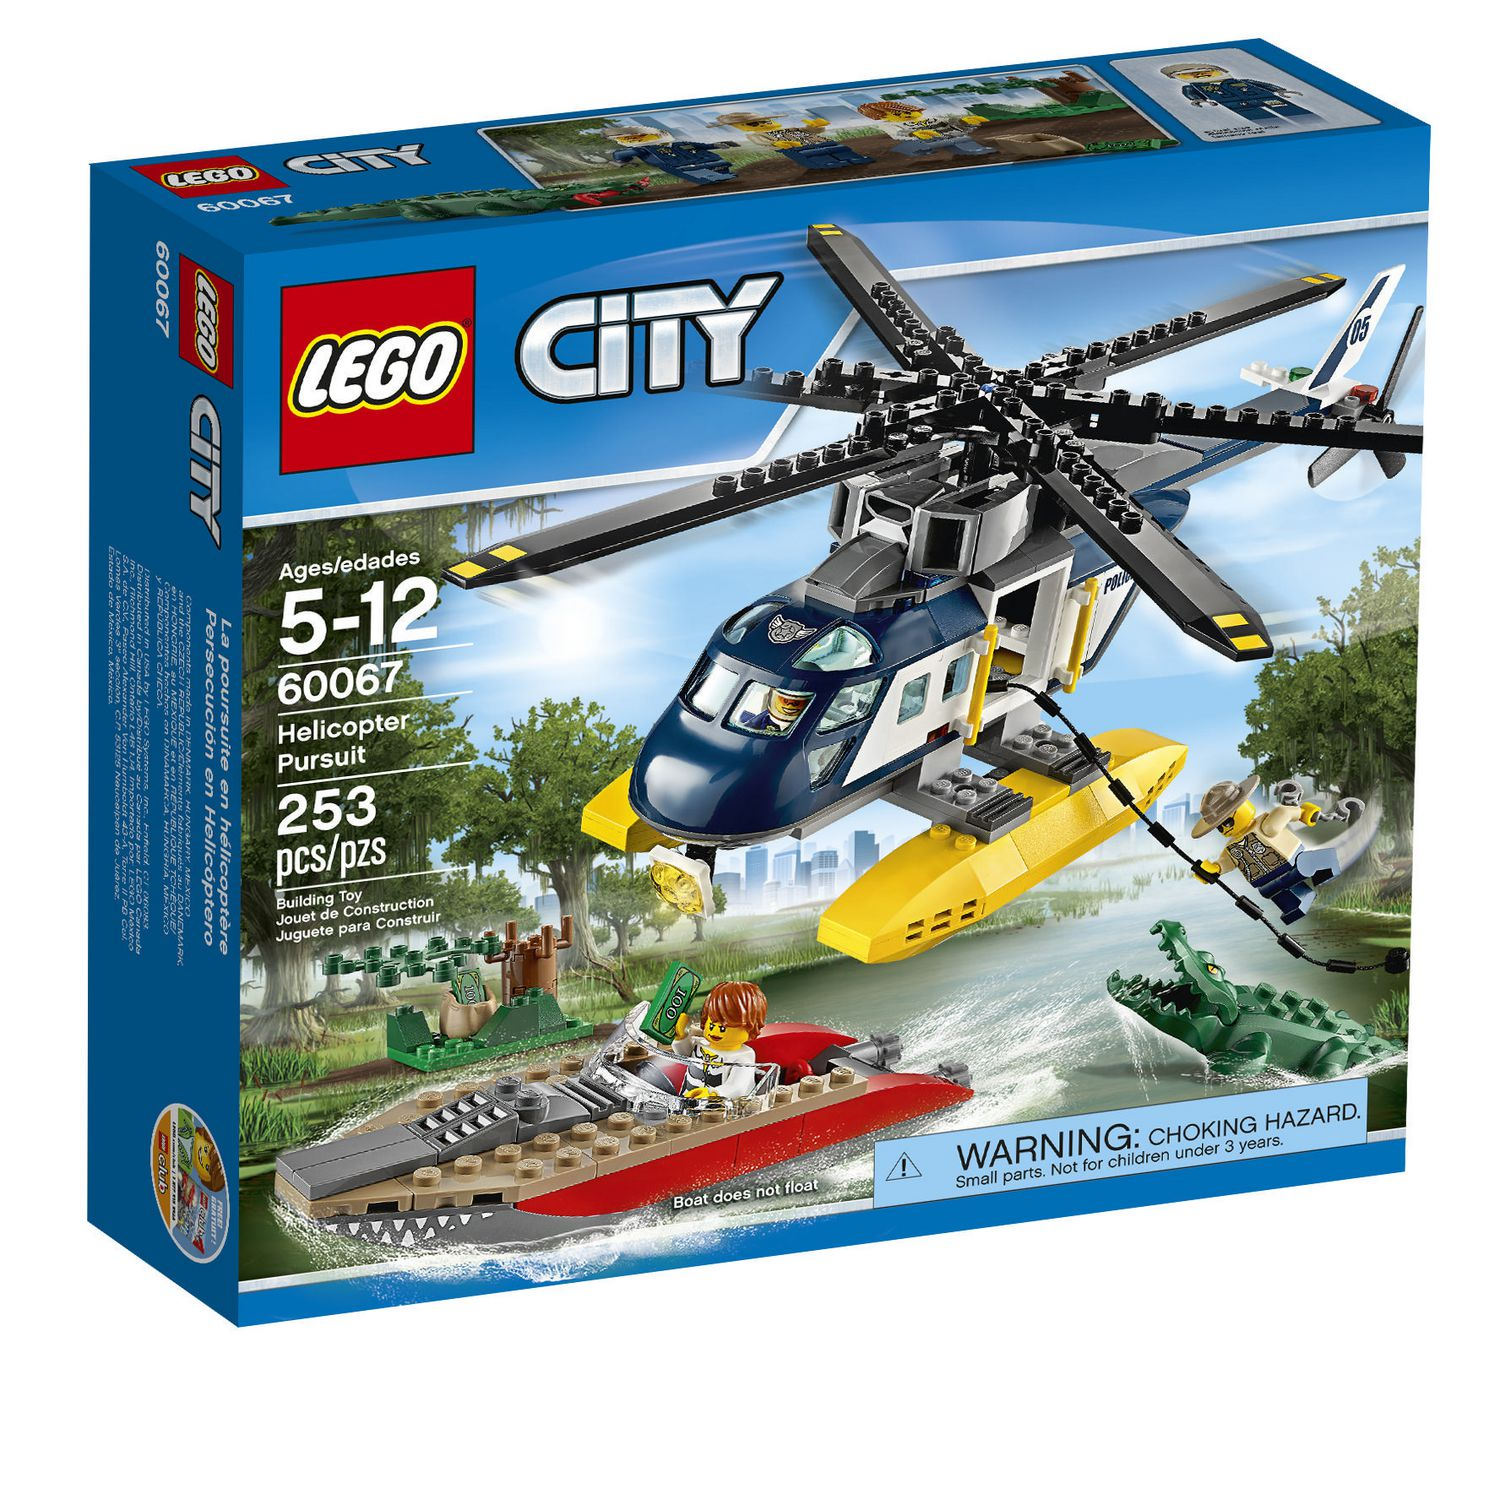 Lego City Police Helicopter Pursuit 60067 Walmart Canada